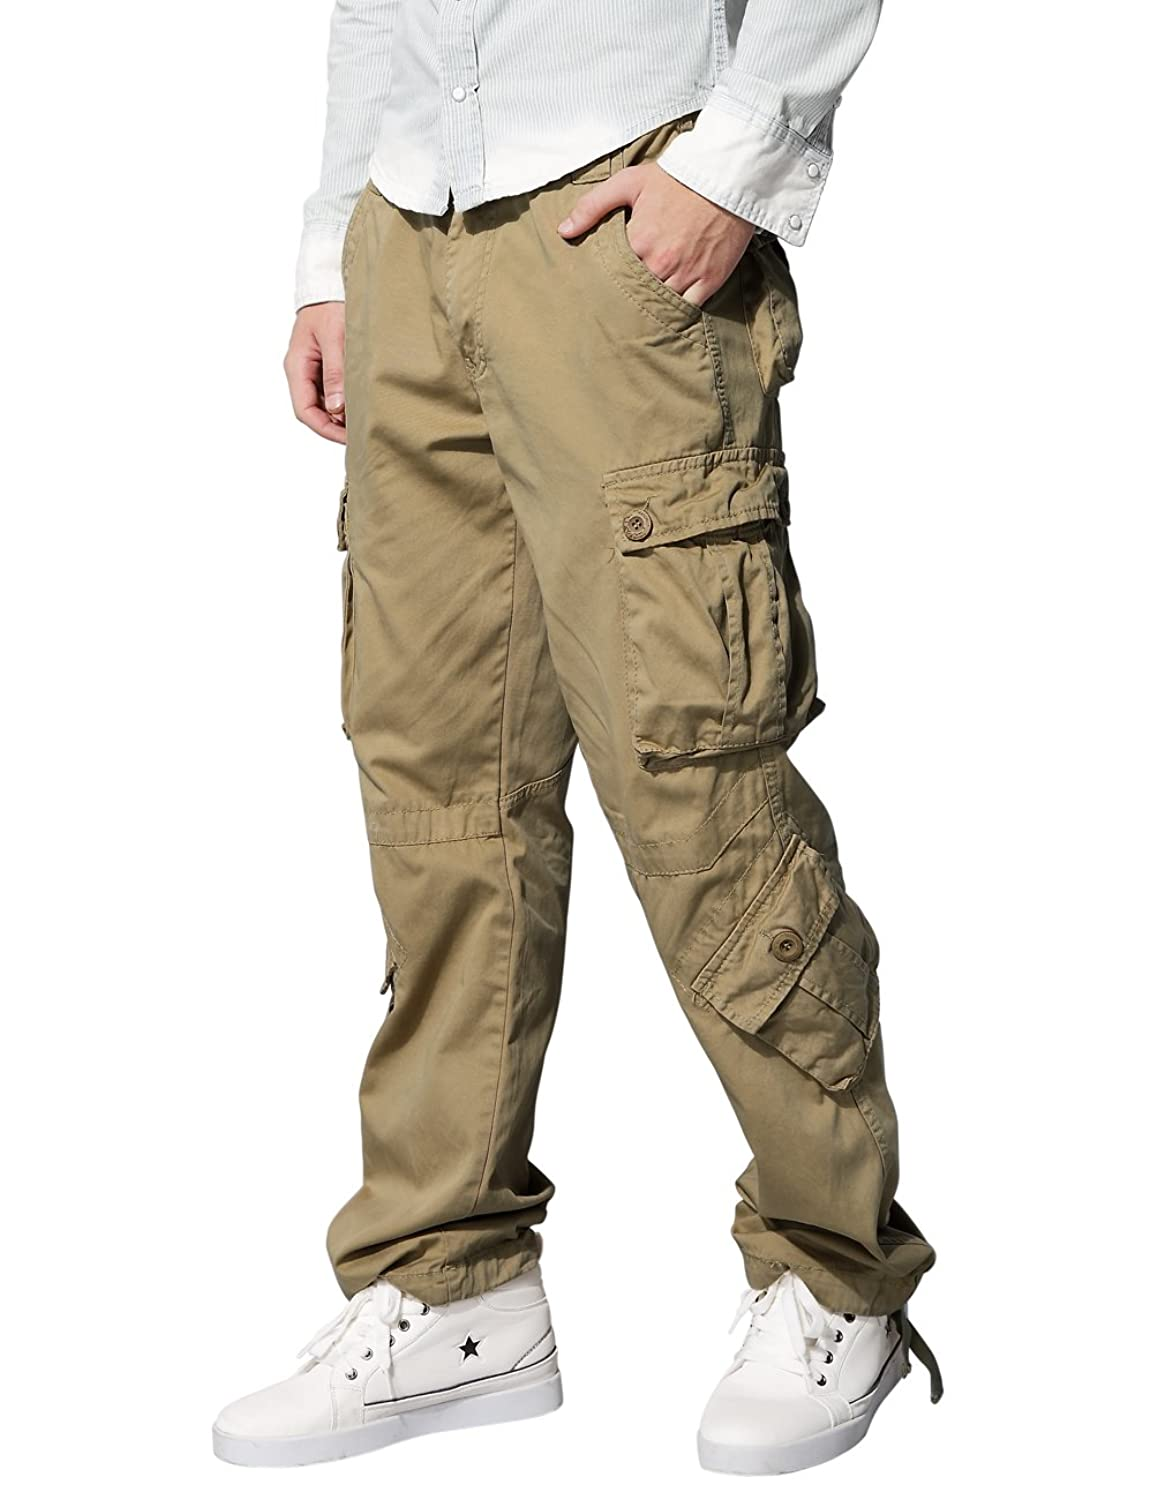 Cool Cargo Pants For Men Match Men 39 s Cargo Pants at